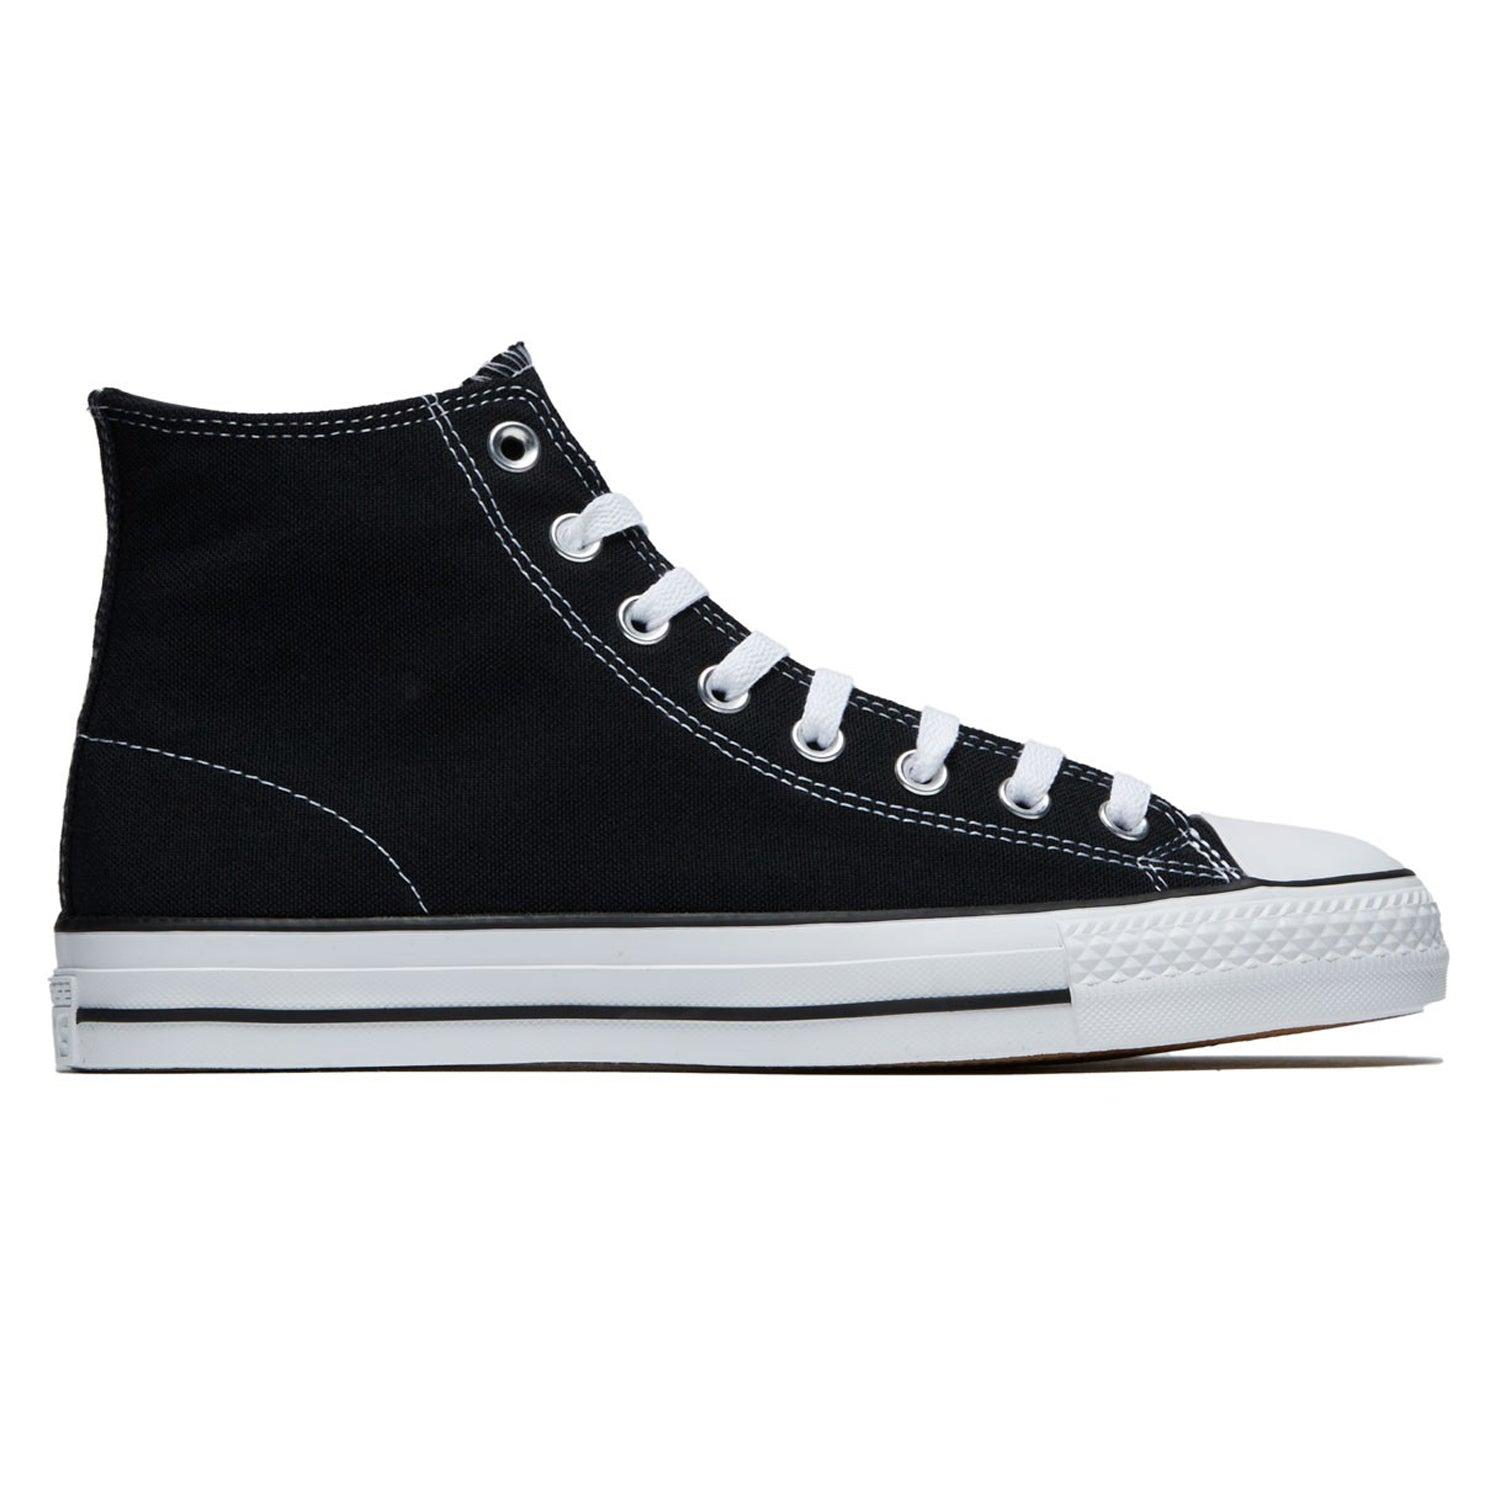 Converse Cons CTAS Pro Hi Black/White Canvas Zoom